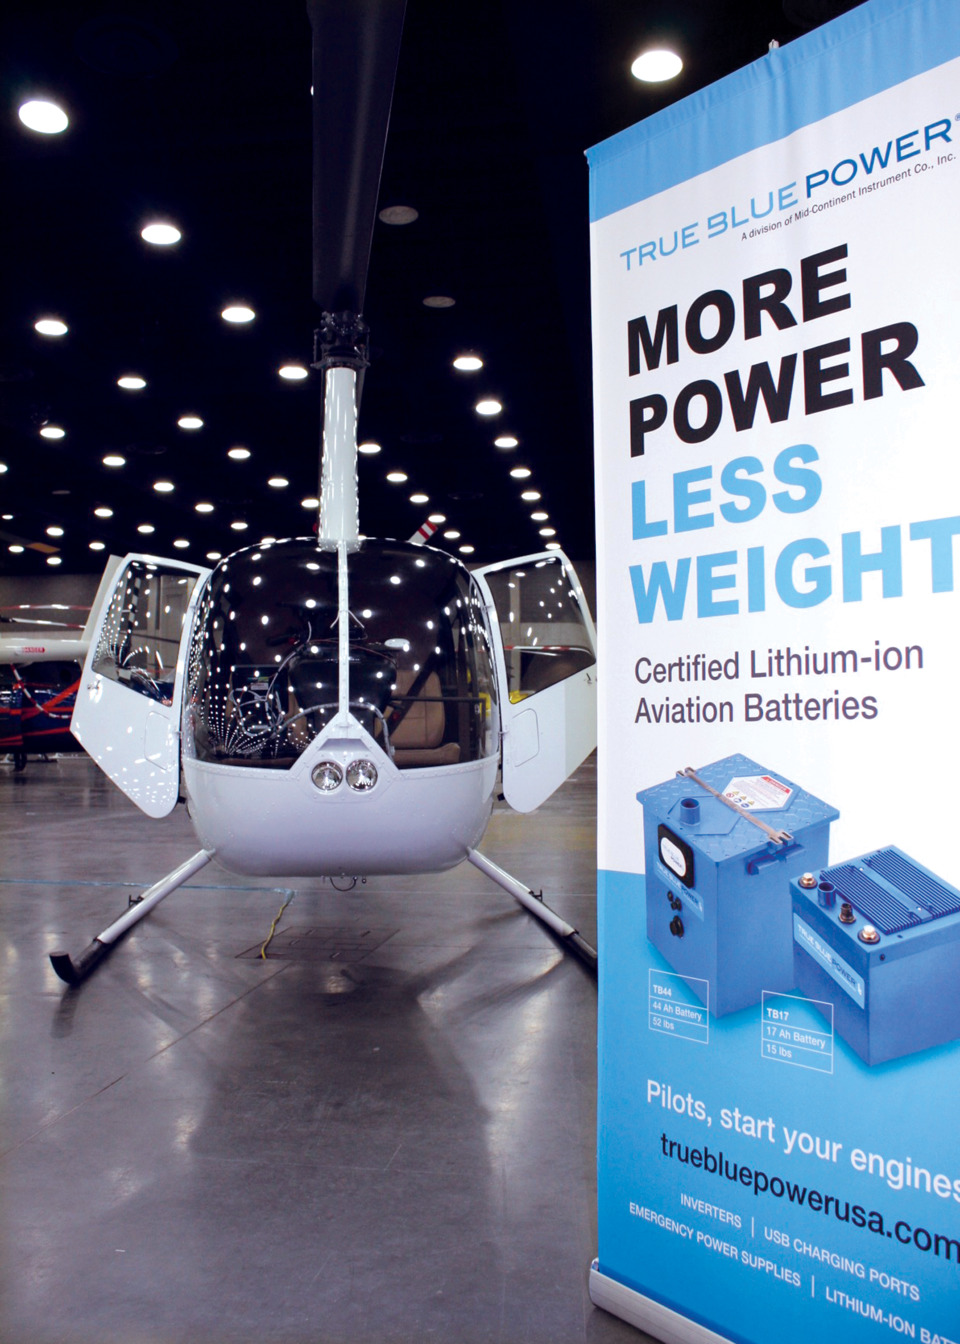 faa issues first ever stc for lithium ion main ship batteries to